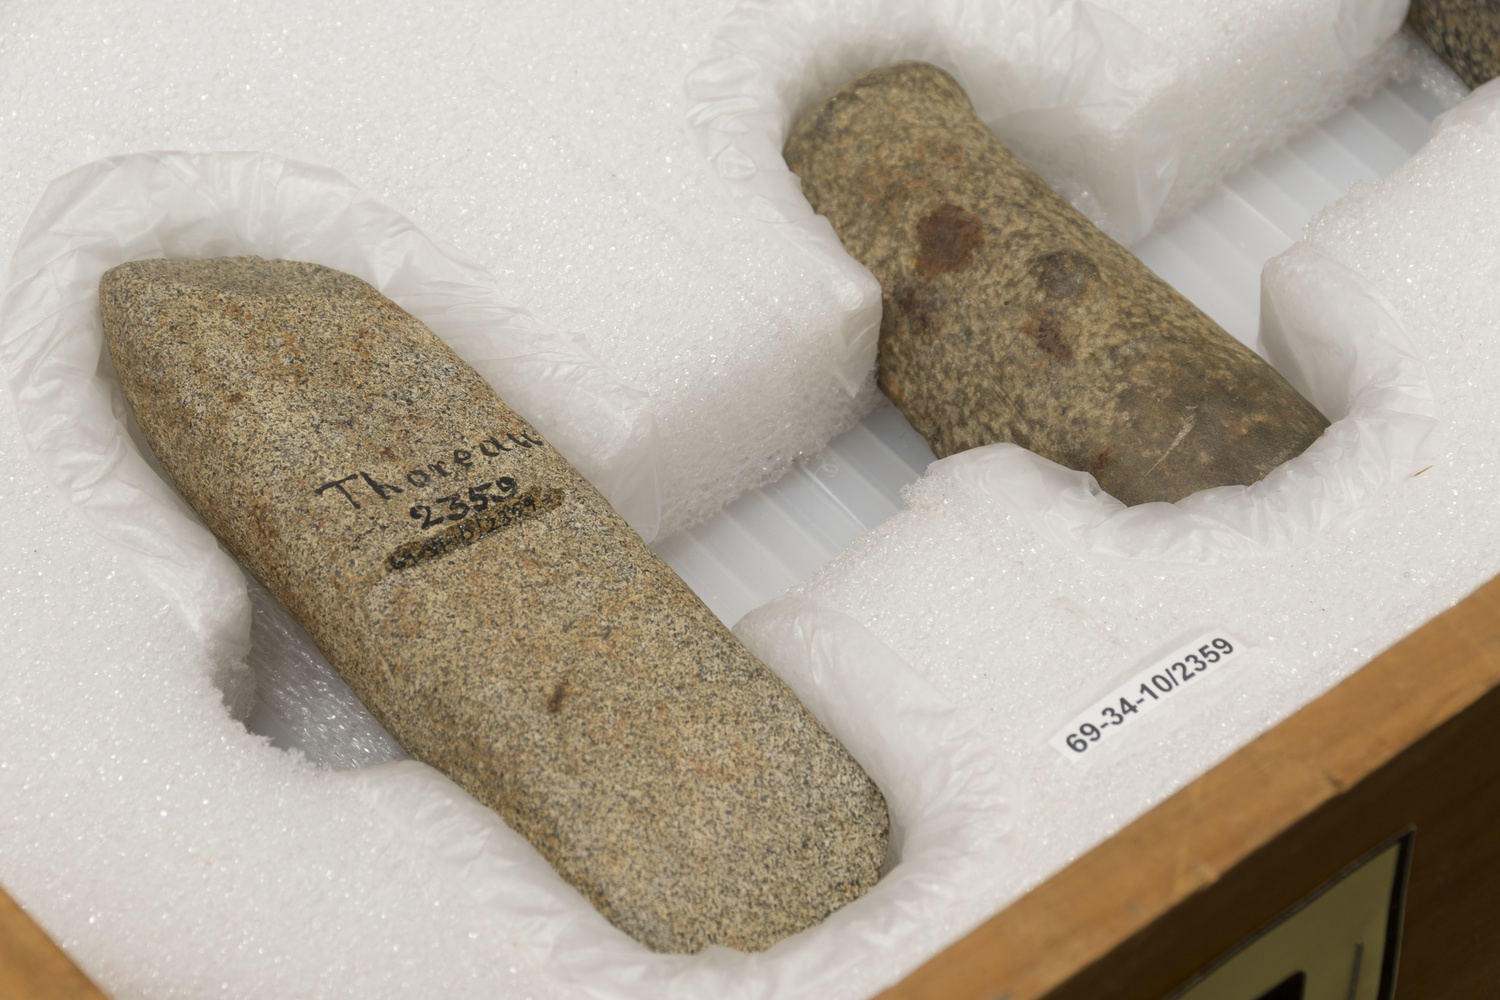 Stones collected by Henry David Thoreau housed at the Peabody museum. © President and Fellows of Harvard College, Peabody Museum of Archaeology and Ethnology, PM2016.0.33.30